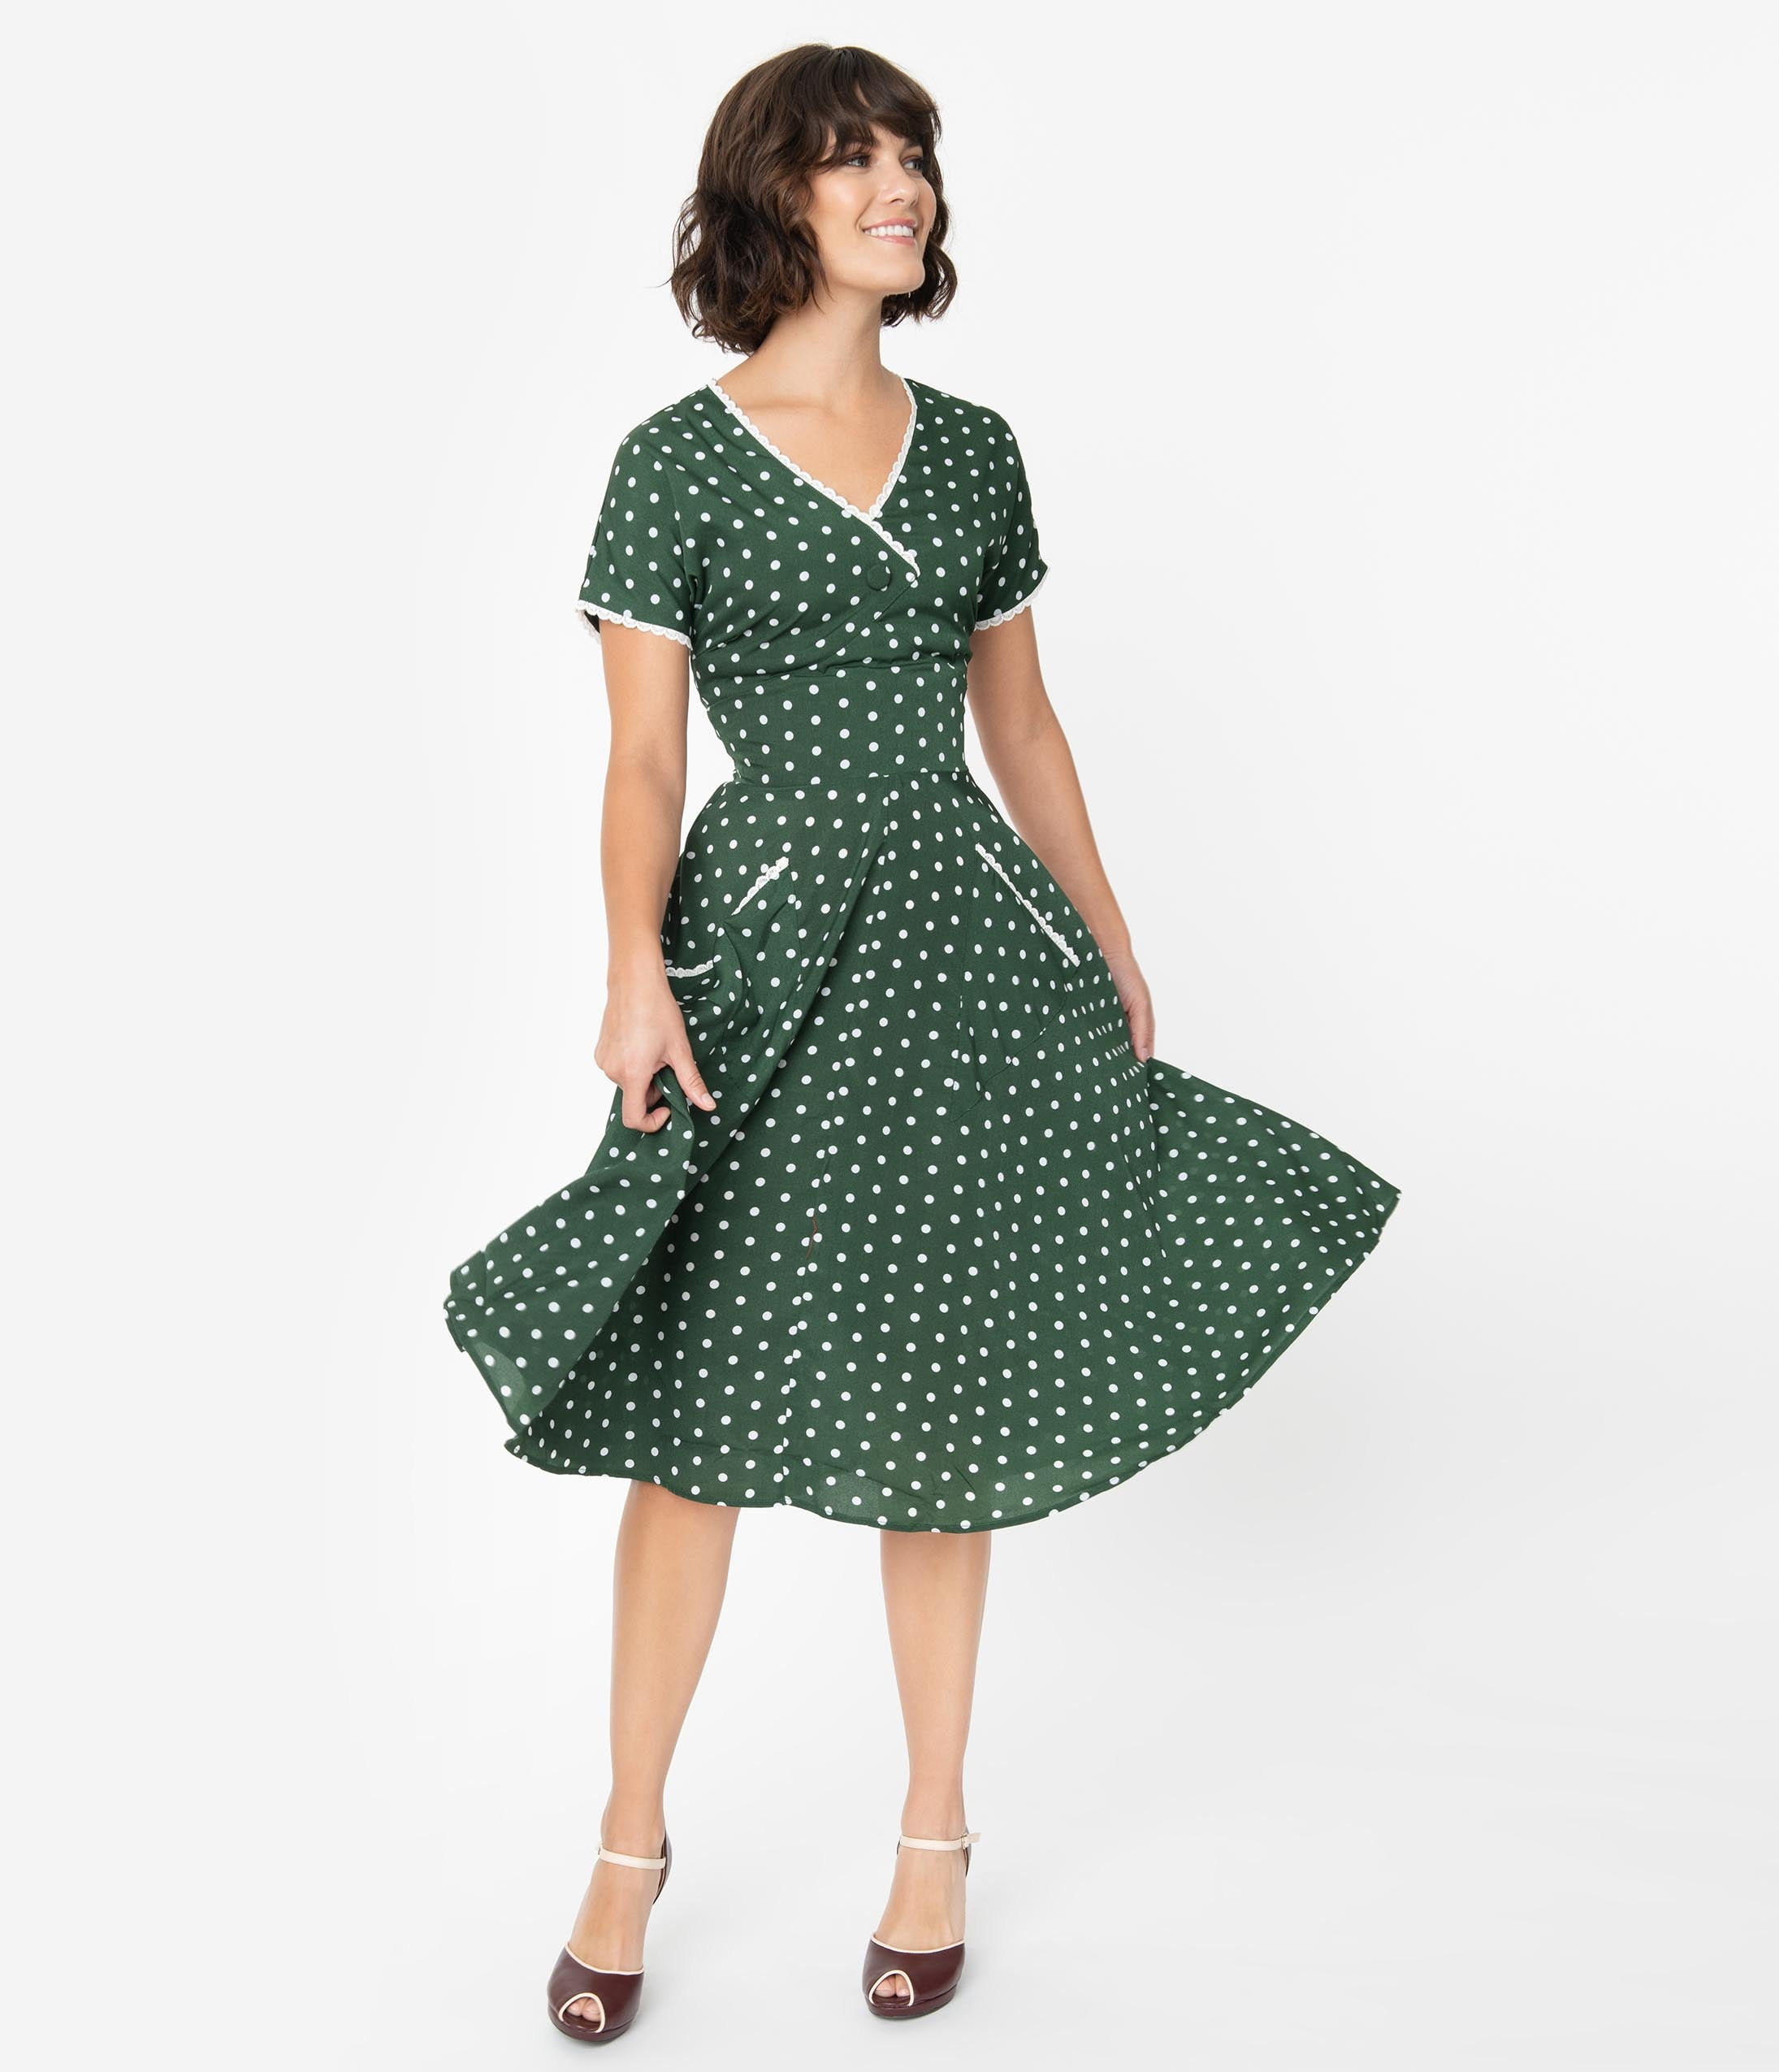 500 Vintage Style Dresses for Sale | Vintage Inspired Dresses Unique Vintage 1950S Dark Green  White Polka Dot Goldie Swing Dress $78.00 AT vintagedancer.com